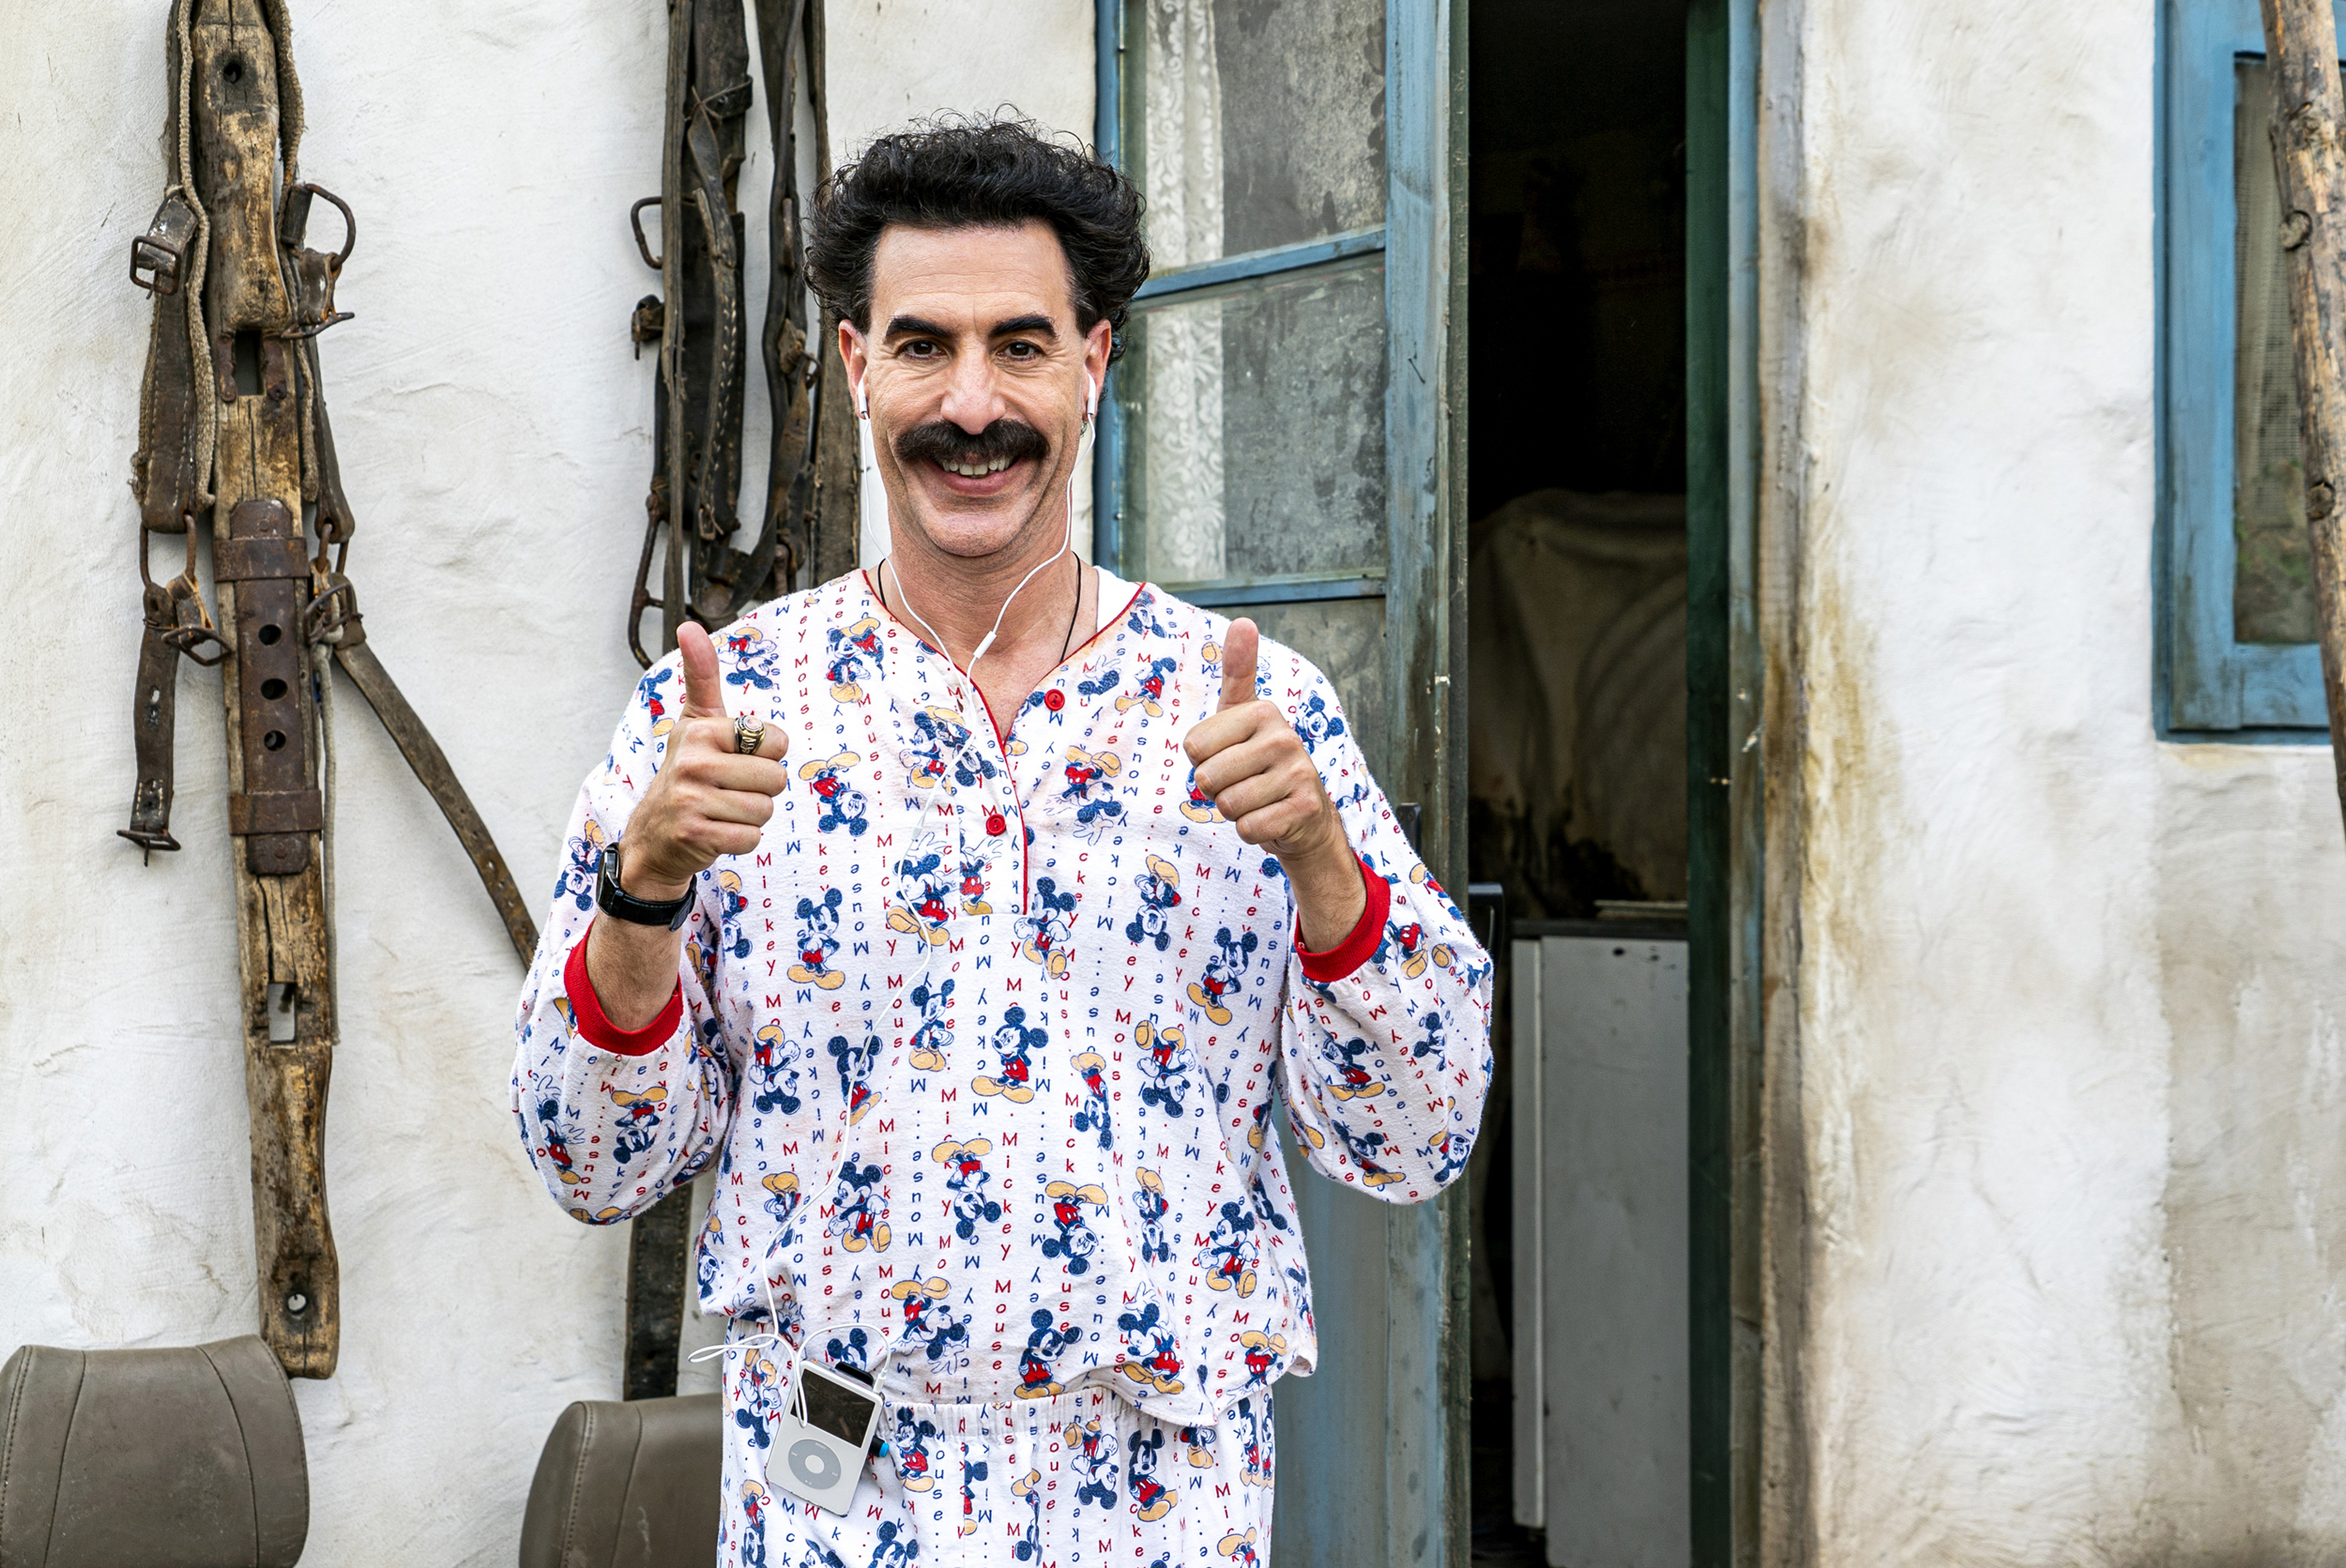 The new 'Borat' is a superhero movie. Mocking the cruel and powerful is a  great skill right now.